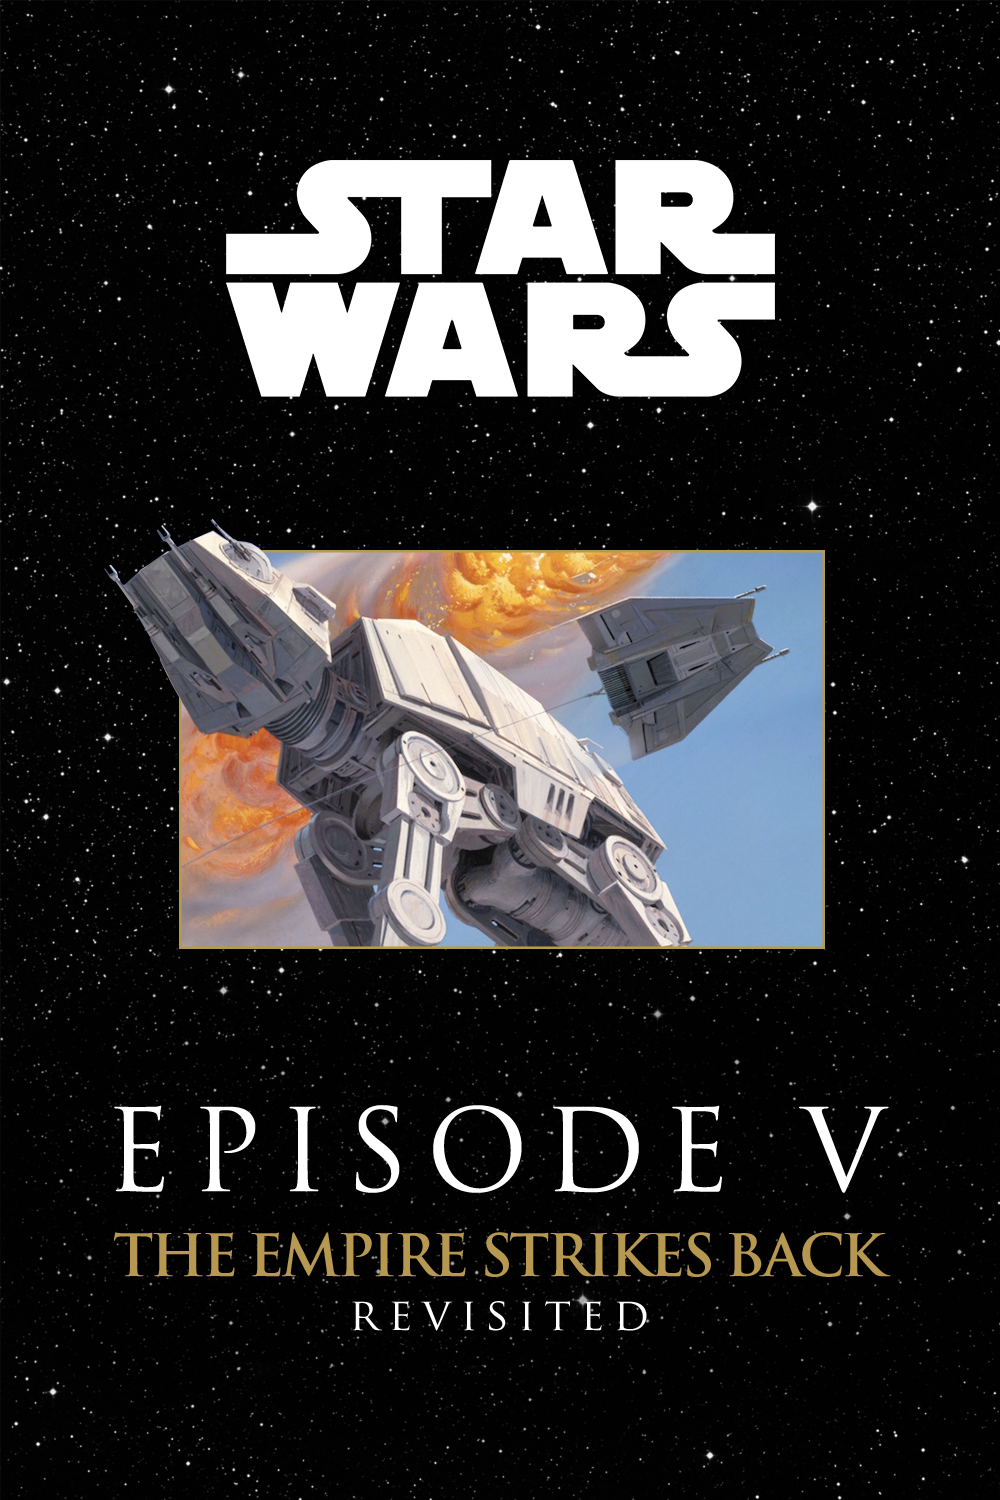 Star Wars Revisited V.png